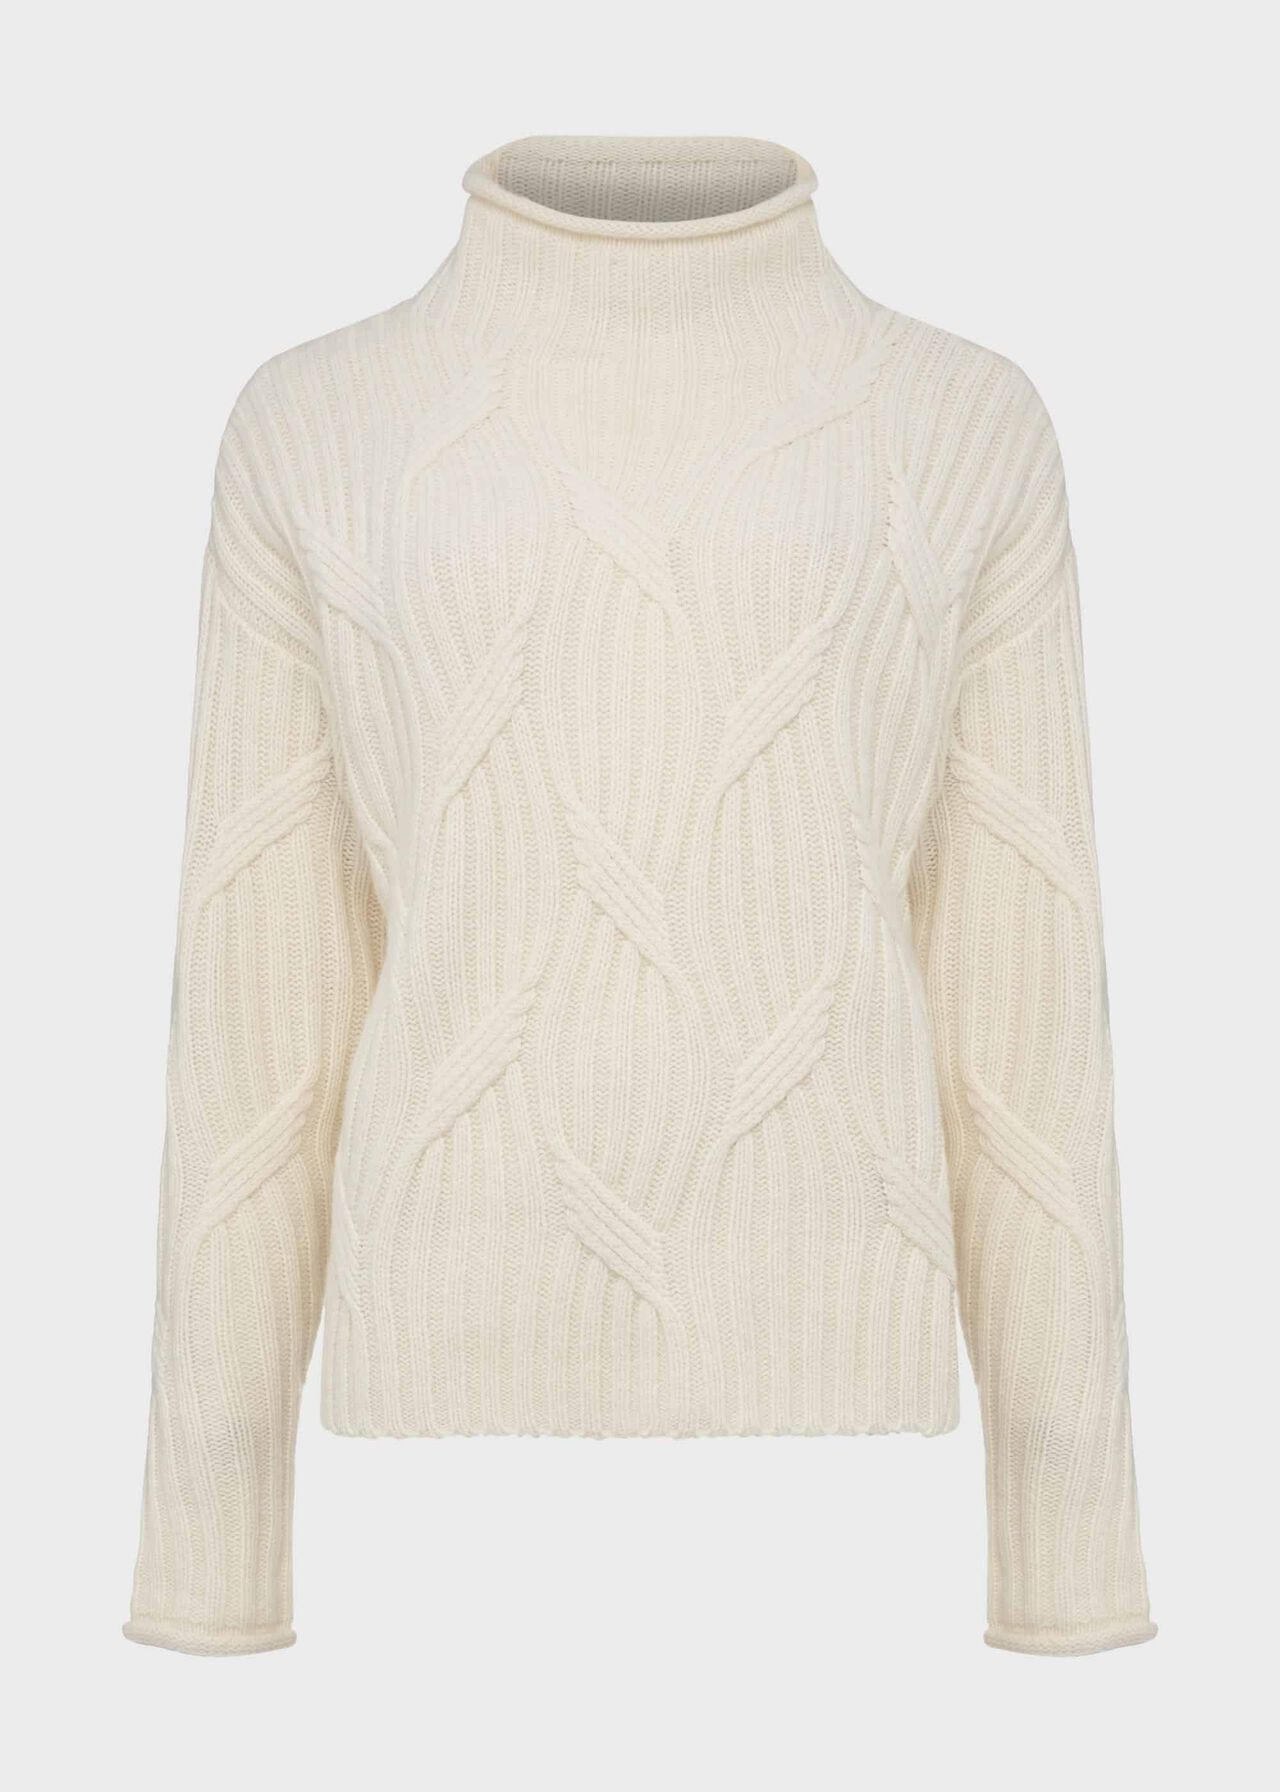 Malikah Wool Blend Cable Jumper, Ivory, hi-res